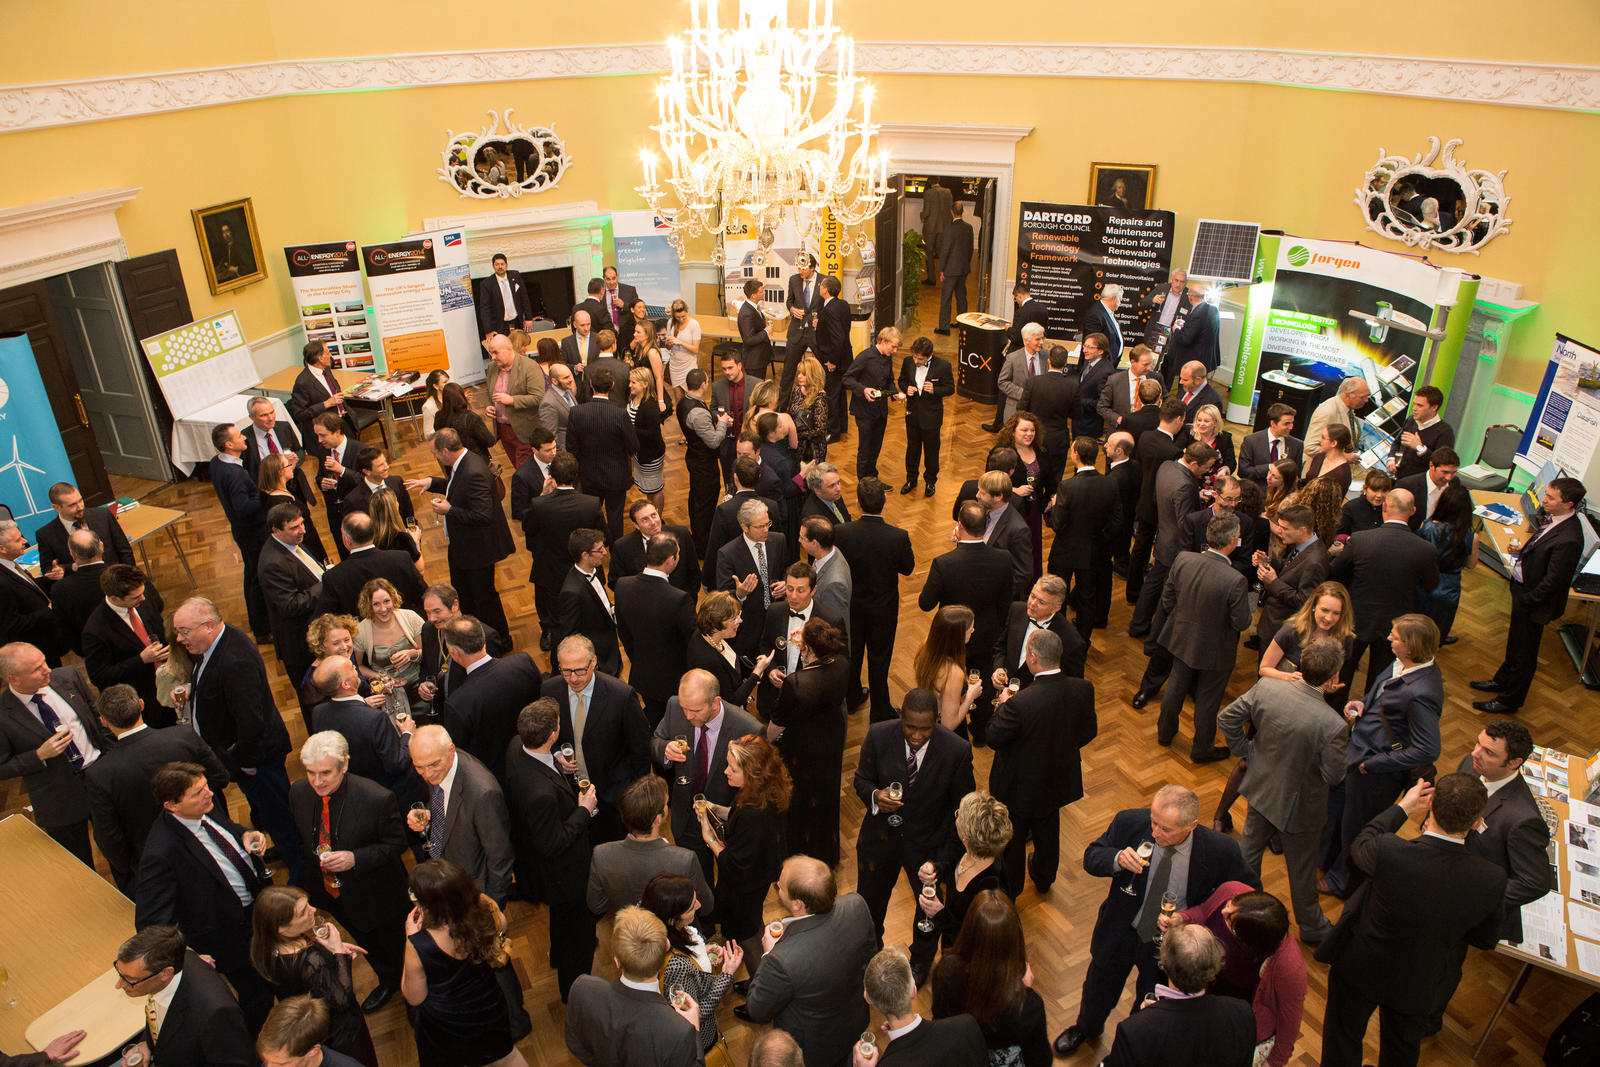 Image: Conference Reception in the Great Octagon